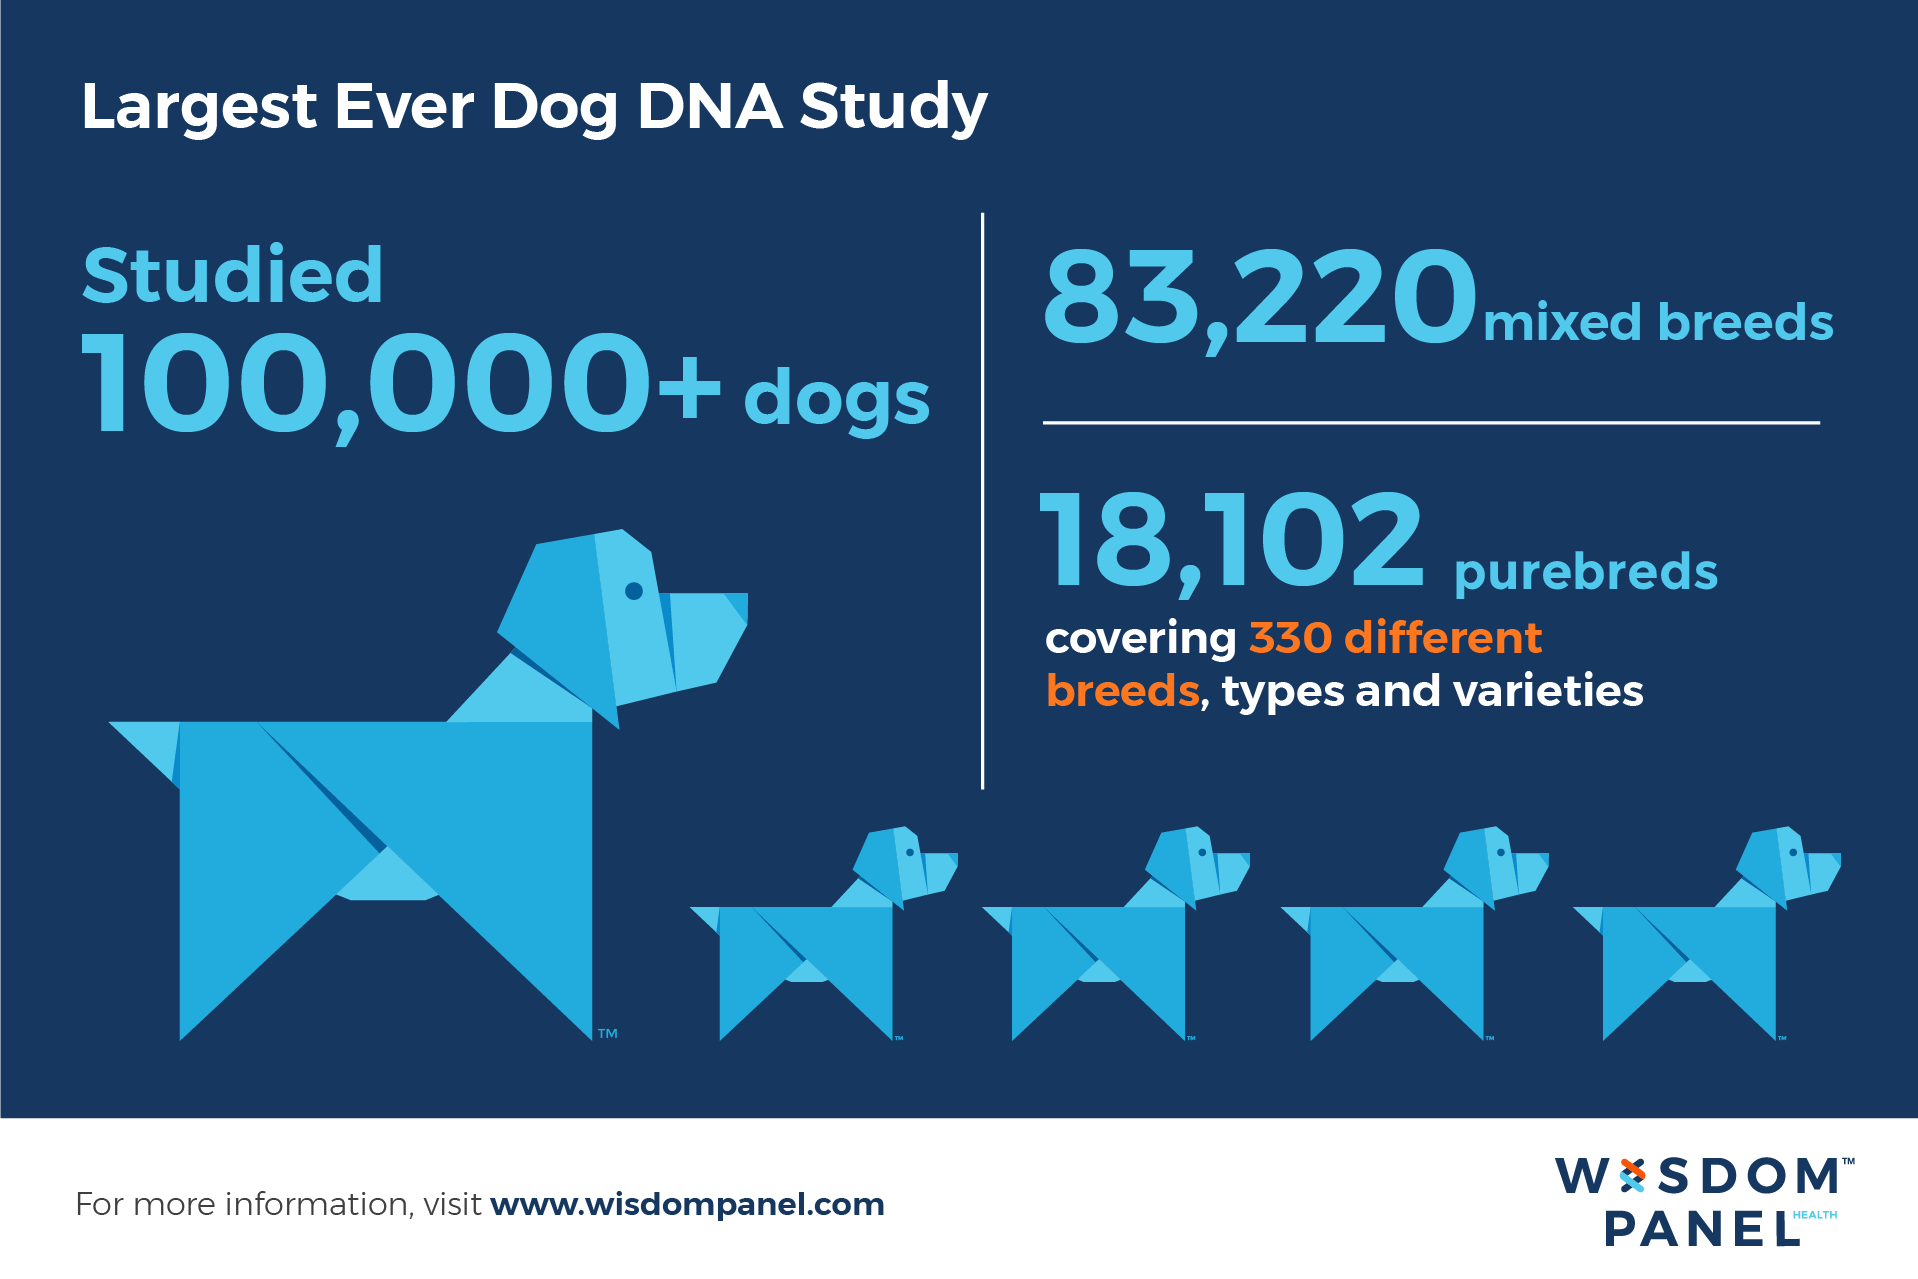 Largest ever dog DNA study infographic